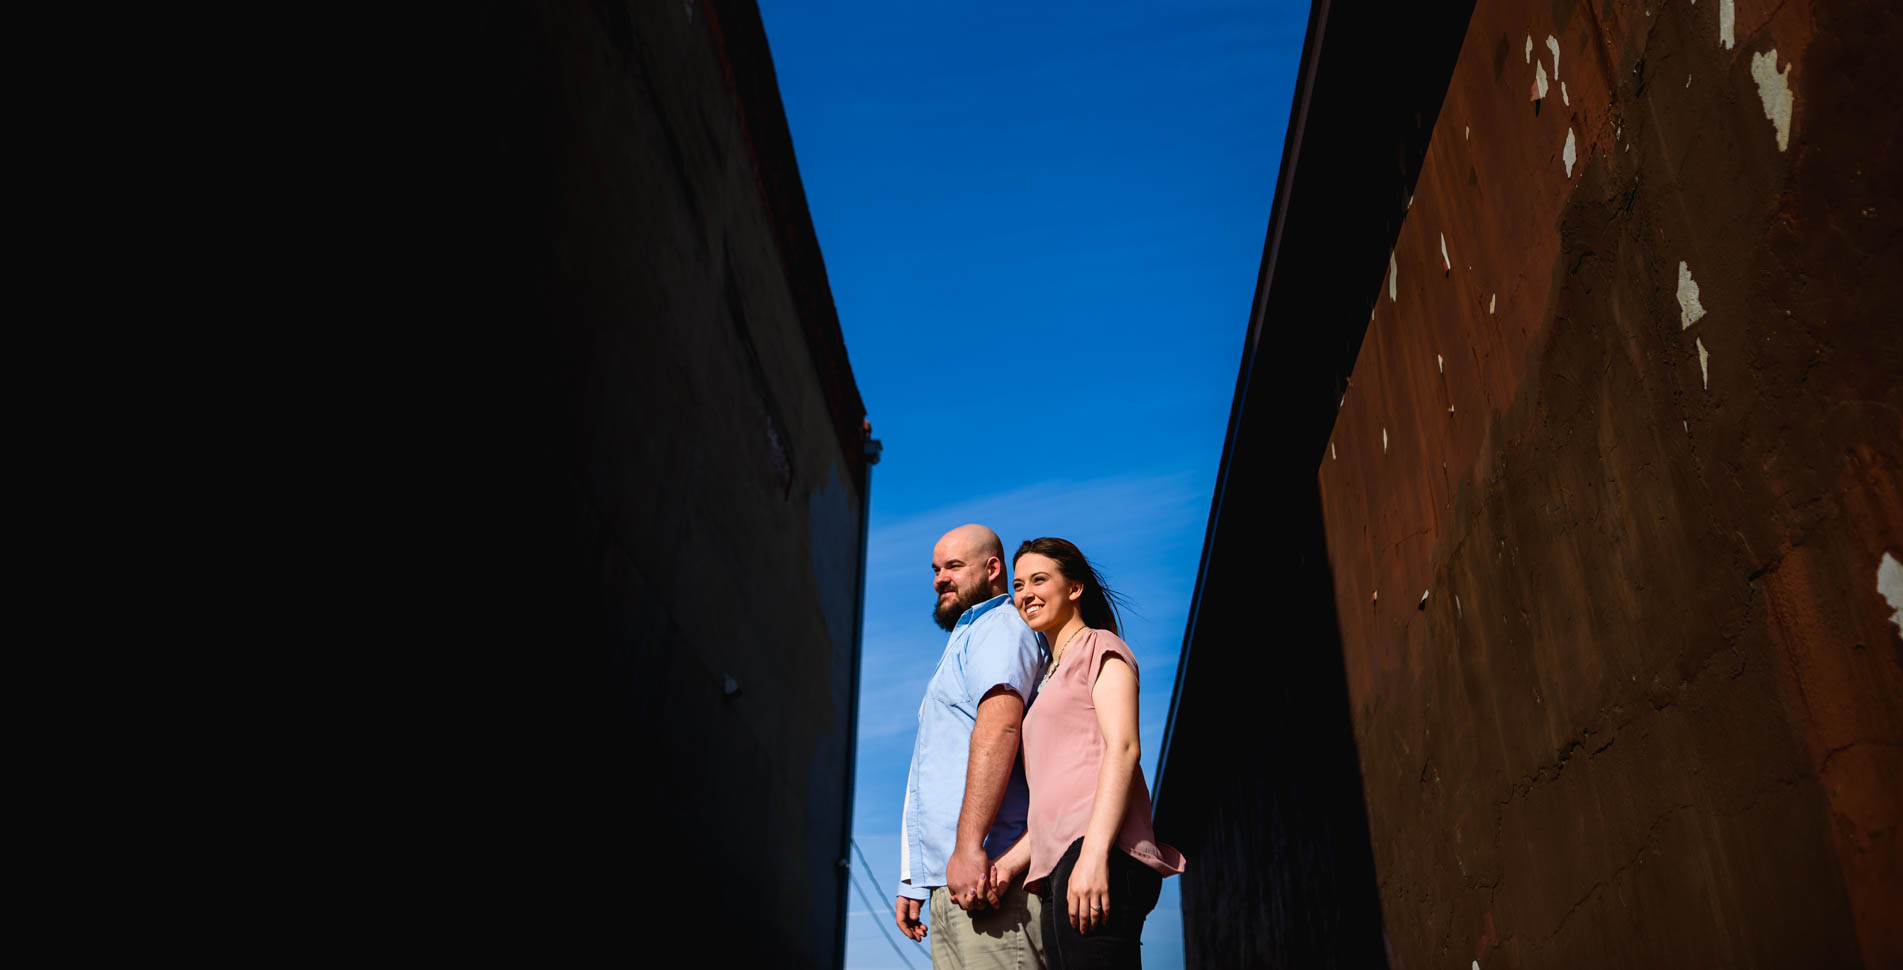 Nelson & Jocie's Marietta Ohio Engagement Pictures